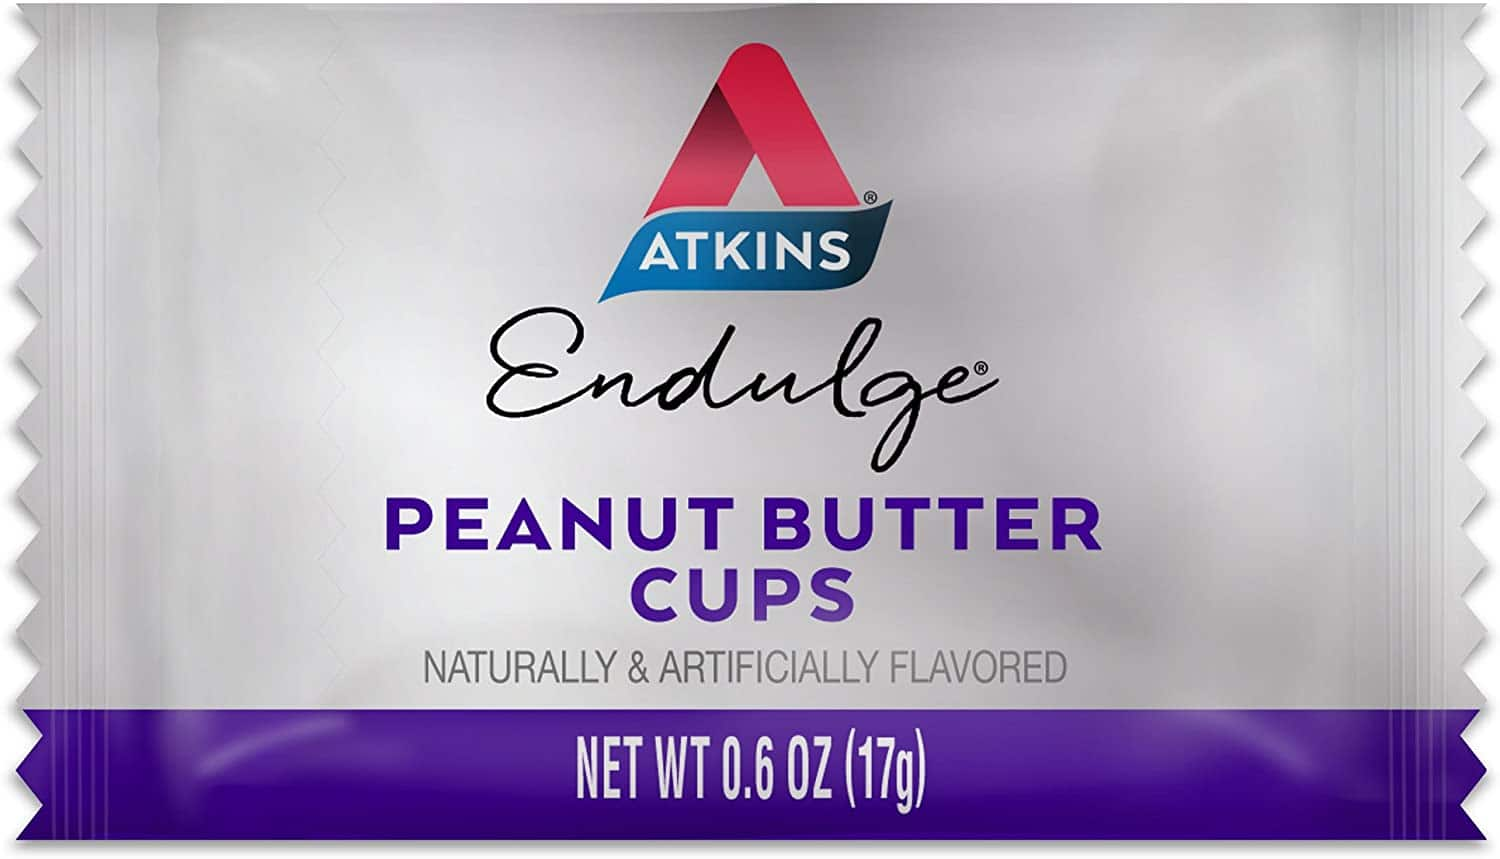 60-Count Atkins Endulge Treat Peanut Butter Cups $19 ($0.32 each) & Free Shipping w/ Prime or $25+